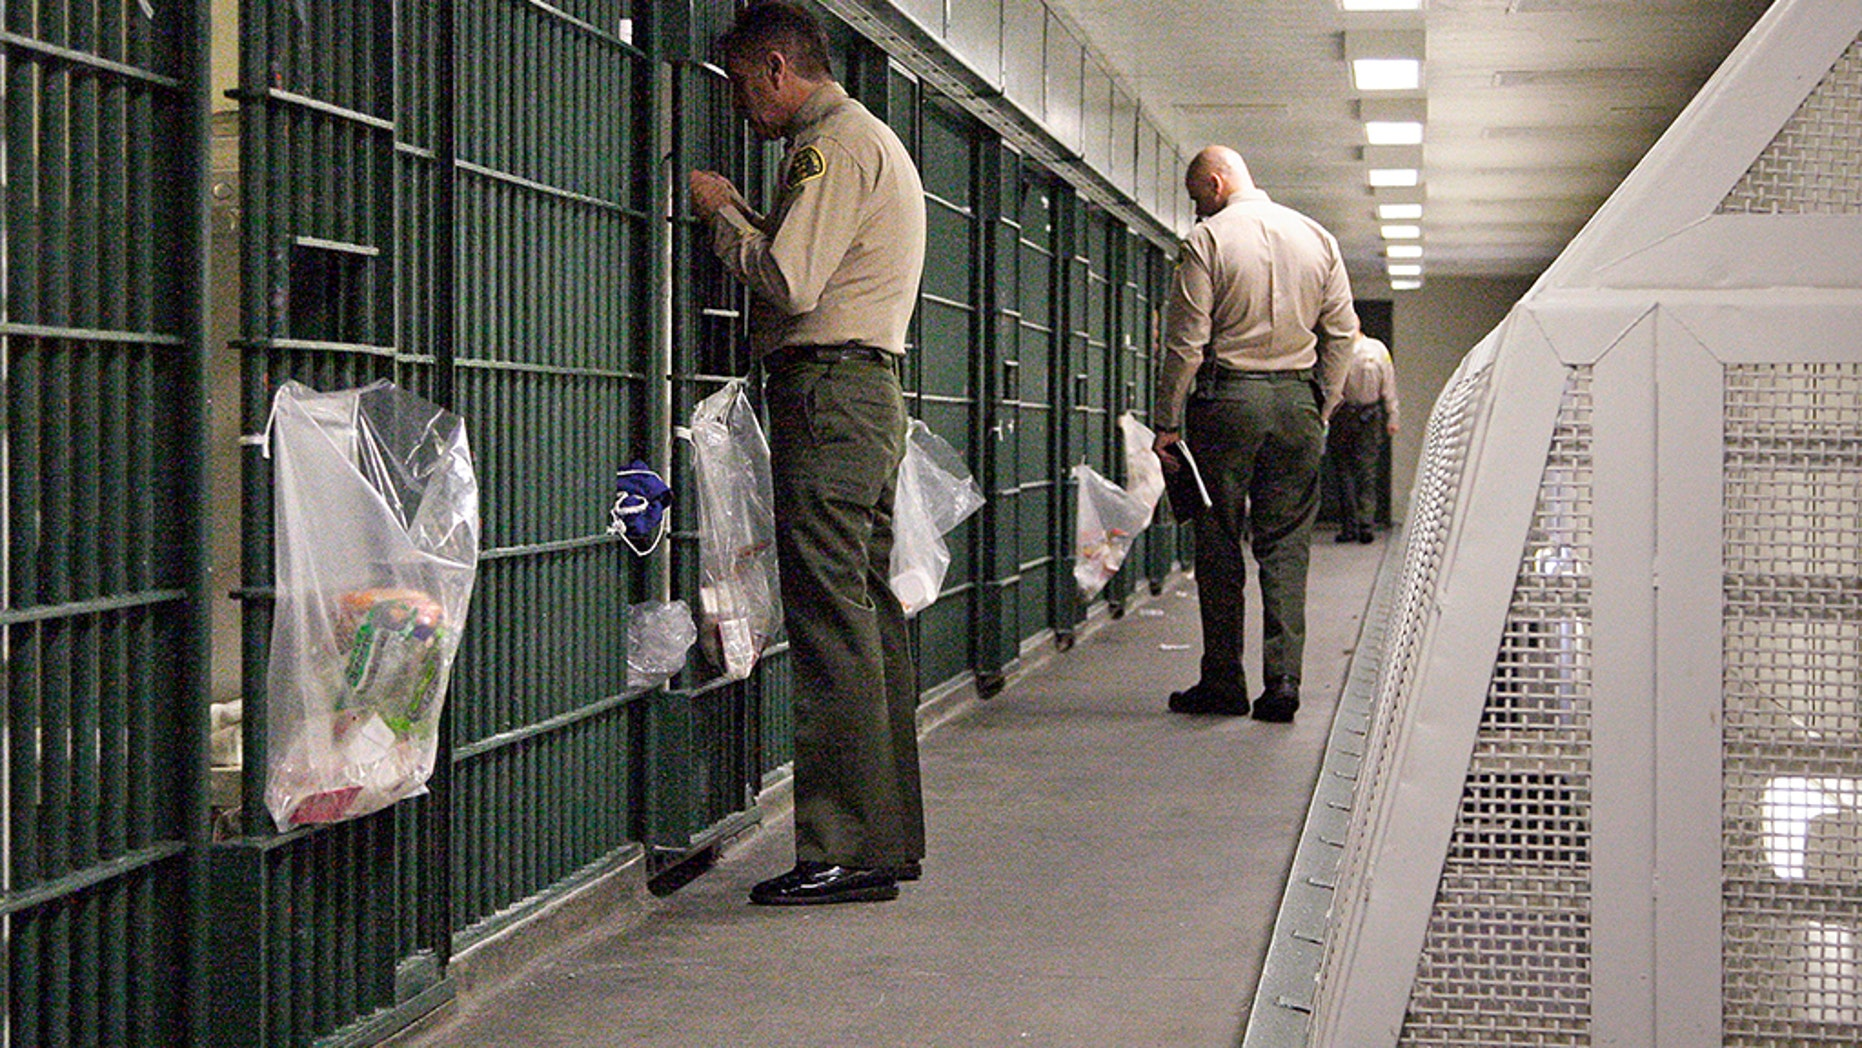 In this Oct. 3, 2012 file photo, Los Angeles County Sheriff's deputies inspect a cell block at the Men's Central Jail in downtown Los Angeles. Five deputies were hospitalized after they were attacked by inmates at the jail on Thursday.